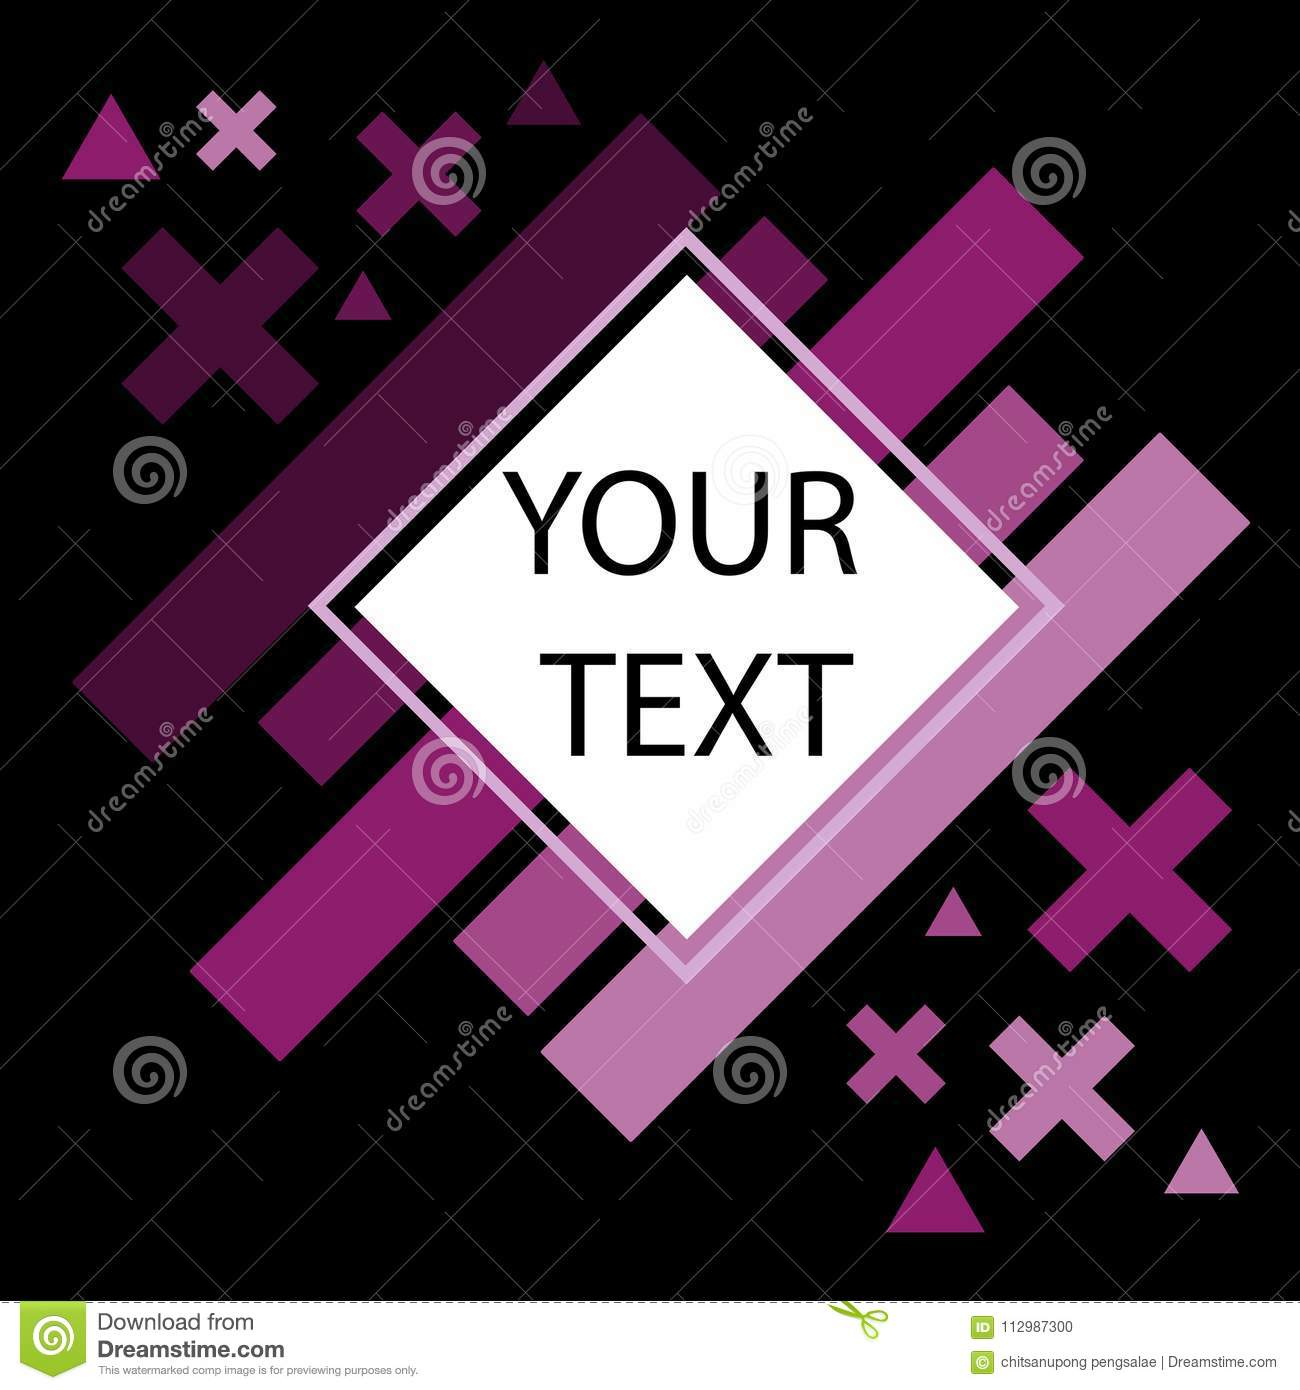 WebAbstract Black Purple Background, Vector Illustration Space for text